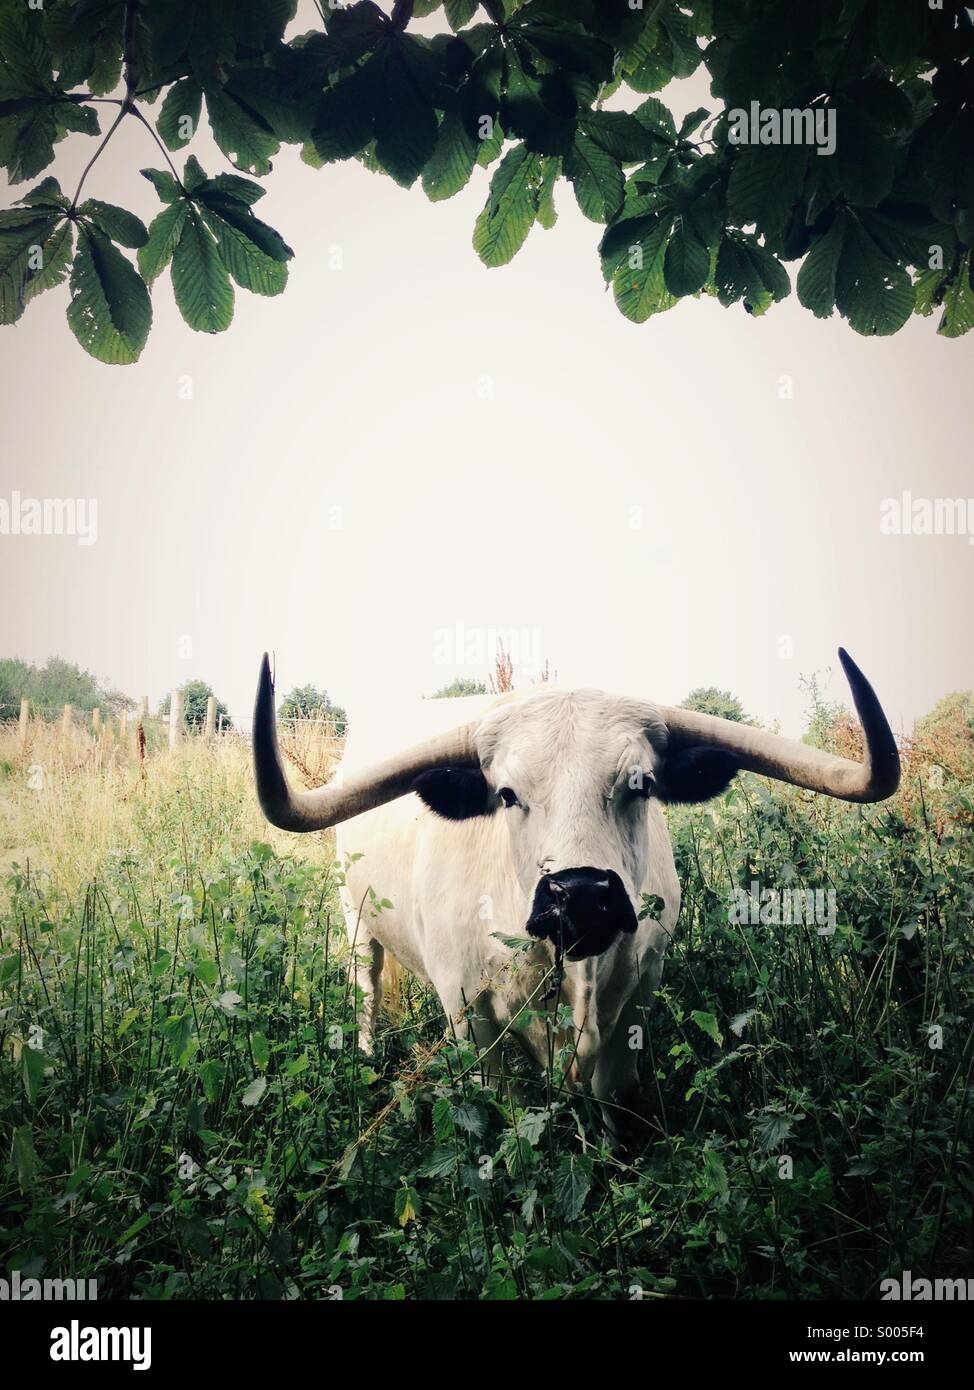 Bull with horns in an overgrown field - Stock Image